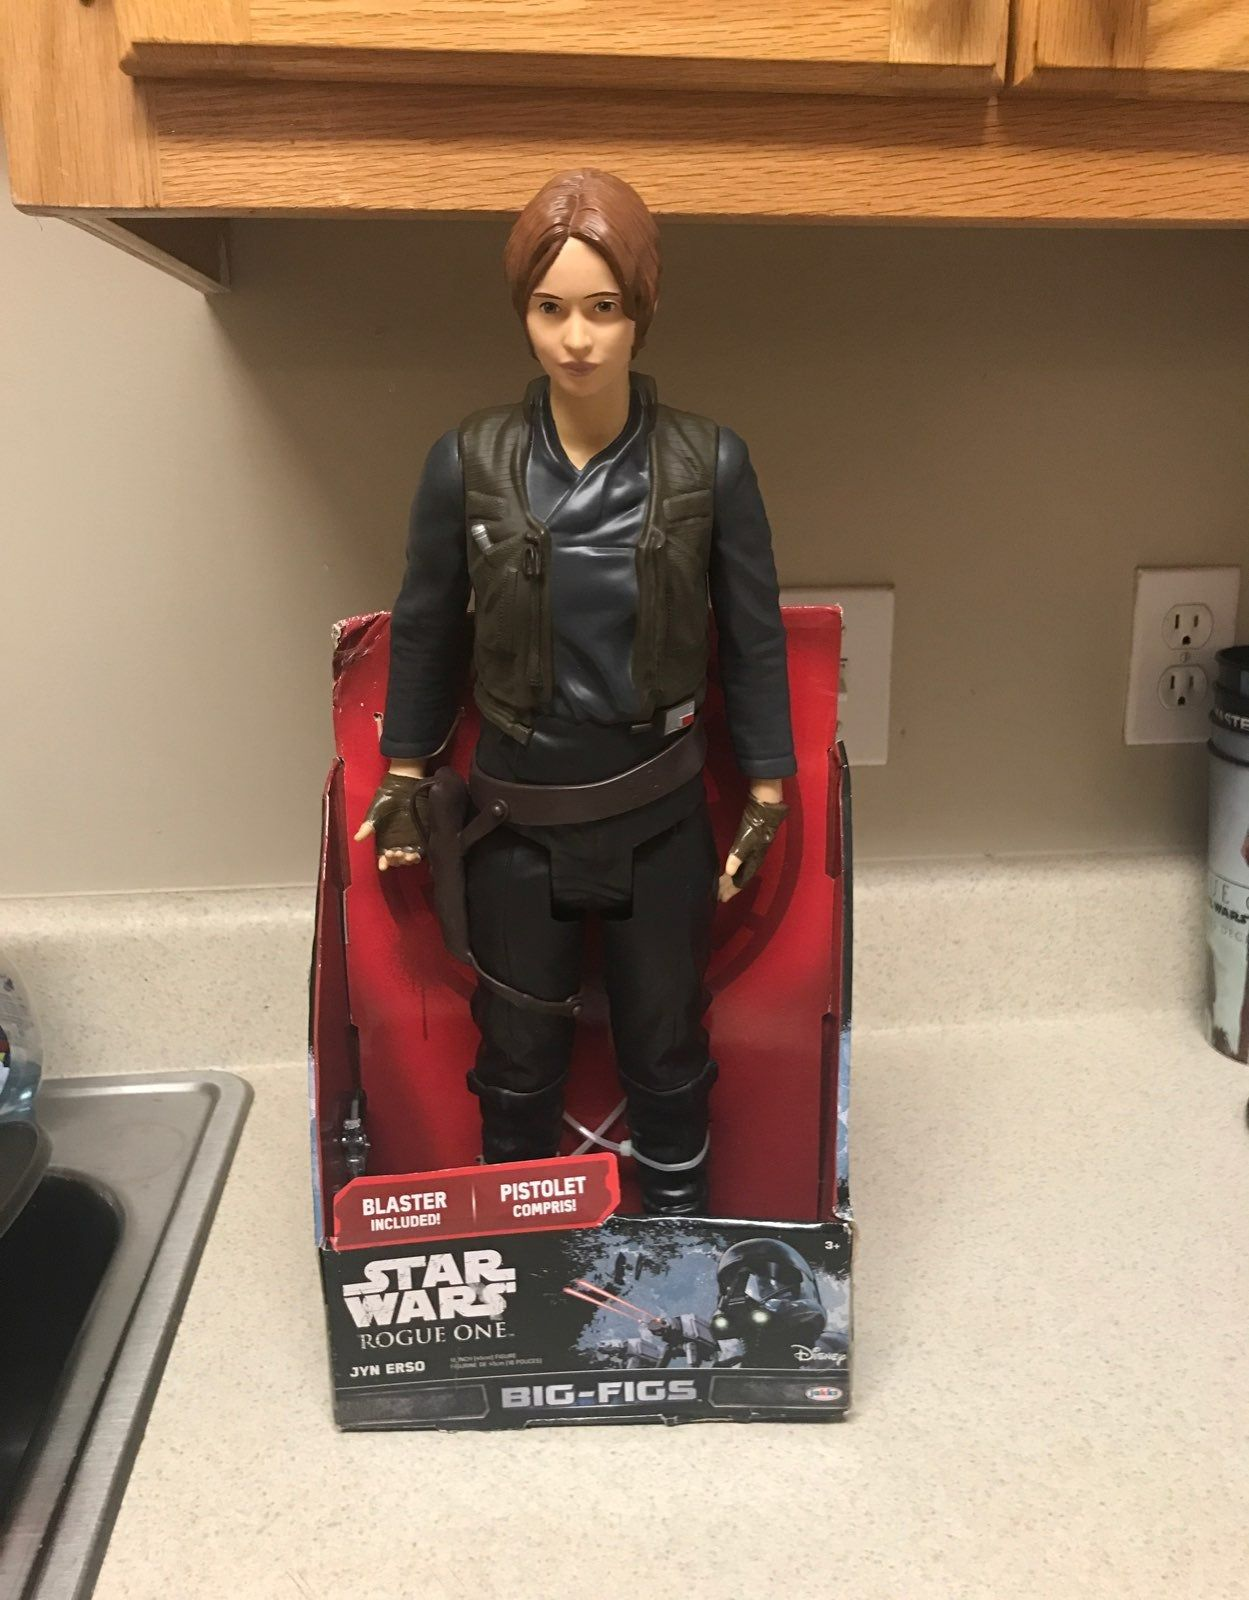 """BIG FIGS Star Wars Rogue One 18/"""" Jyn Erso Action Figure Character Toy FREE SHIP!"""